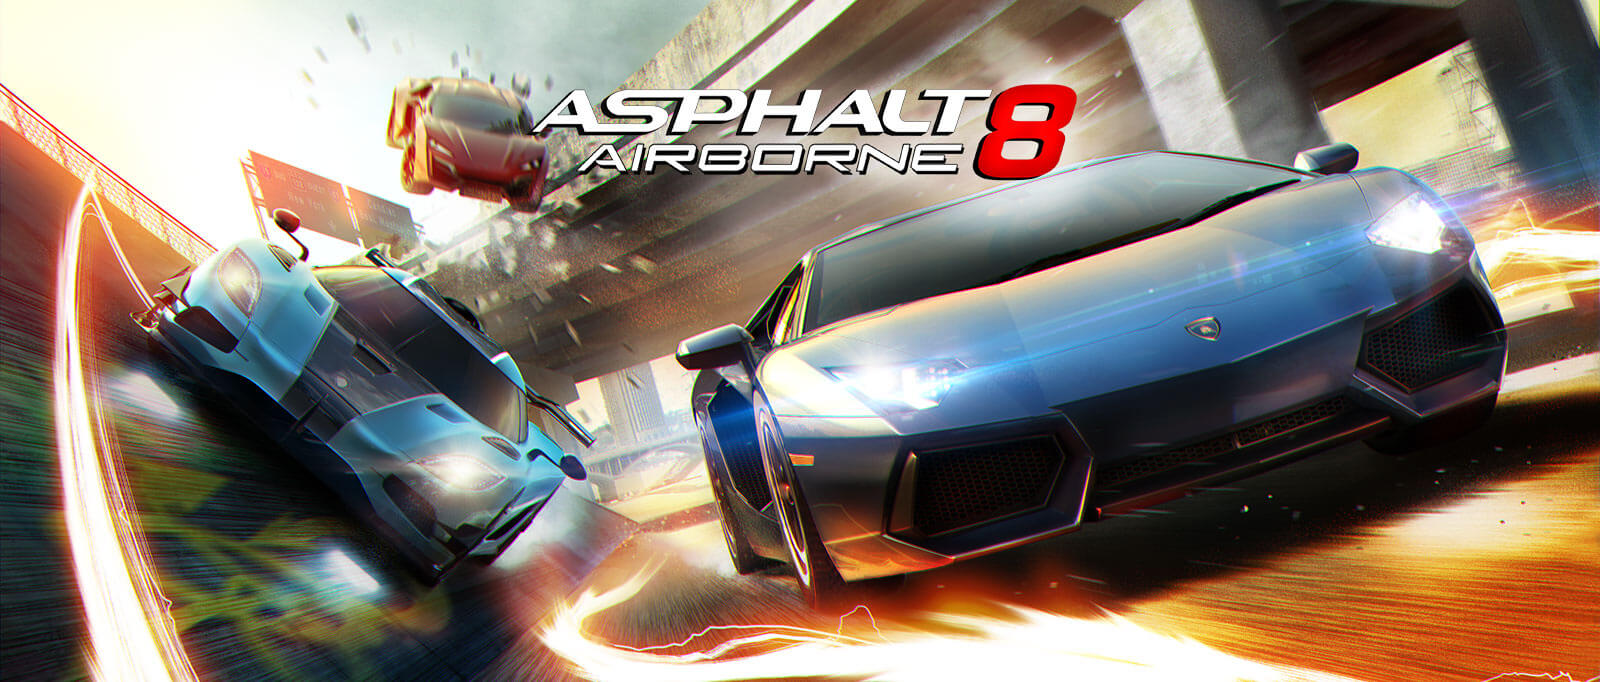 Asphalt 8 is the best go to mobile game if you want to experience some great graphics